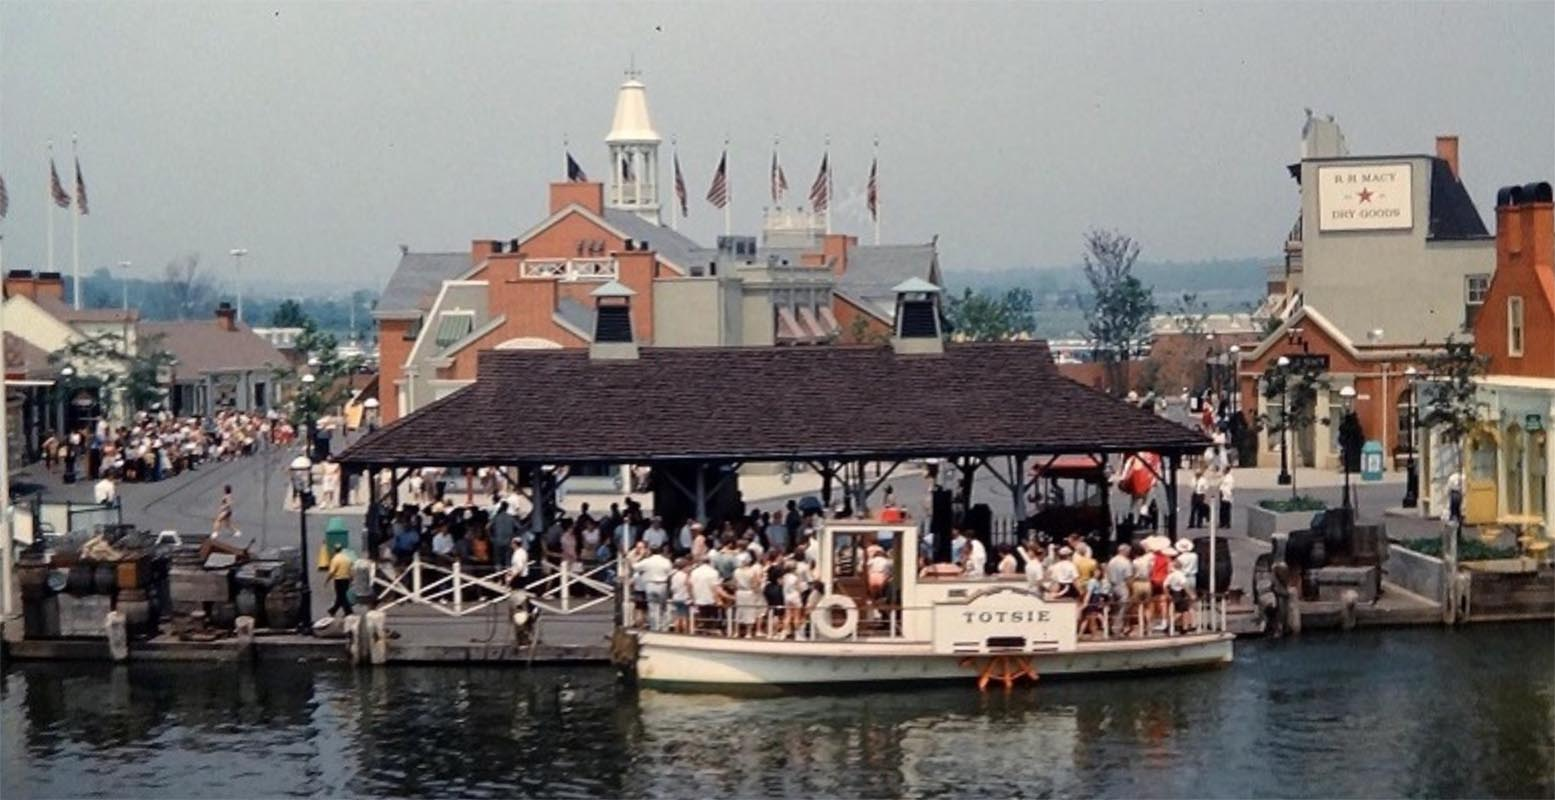 Rare Color Photos of Freedomland, NYC's Grandiose Lost Amusement Park